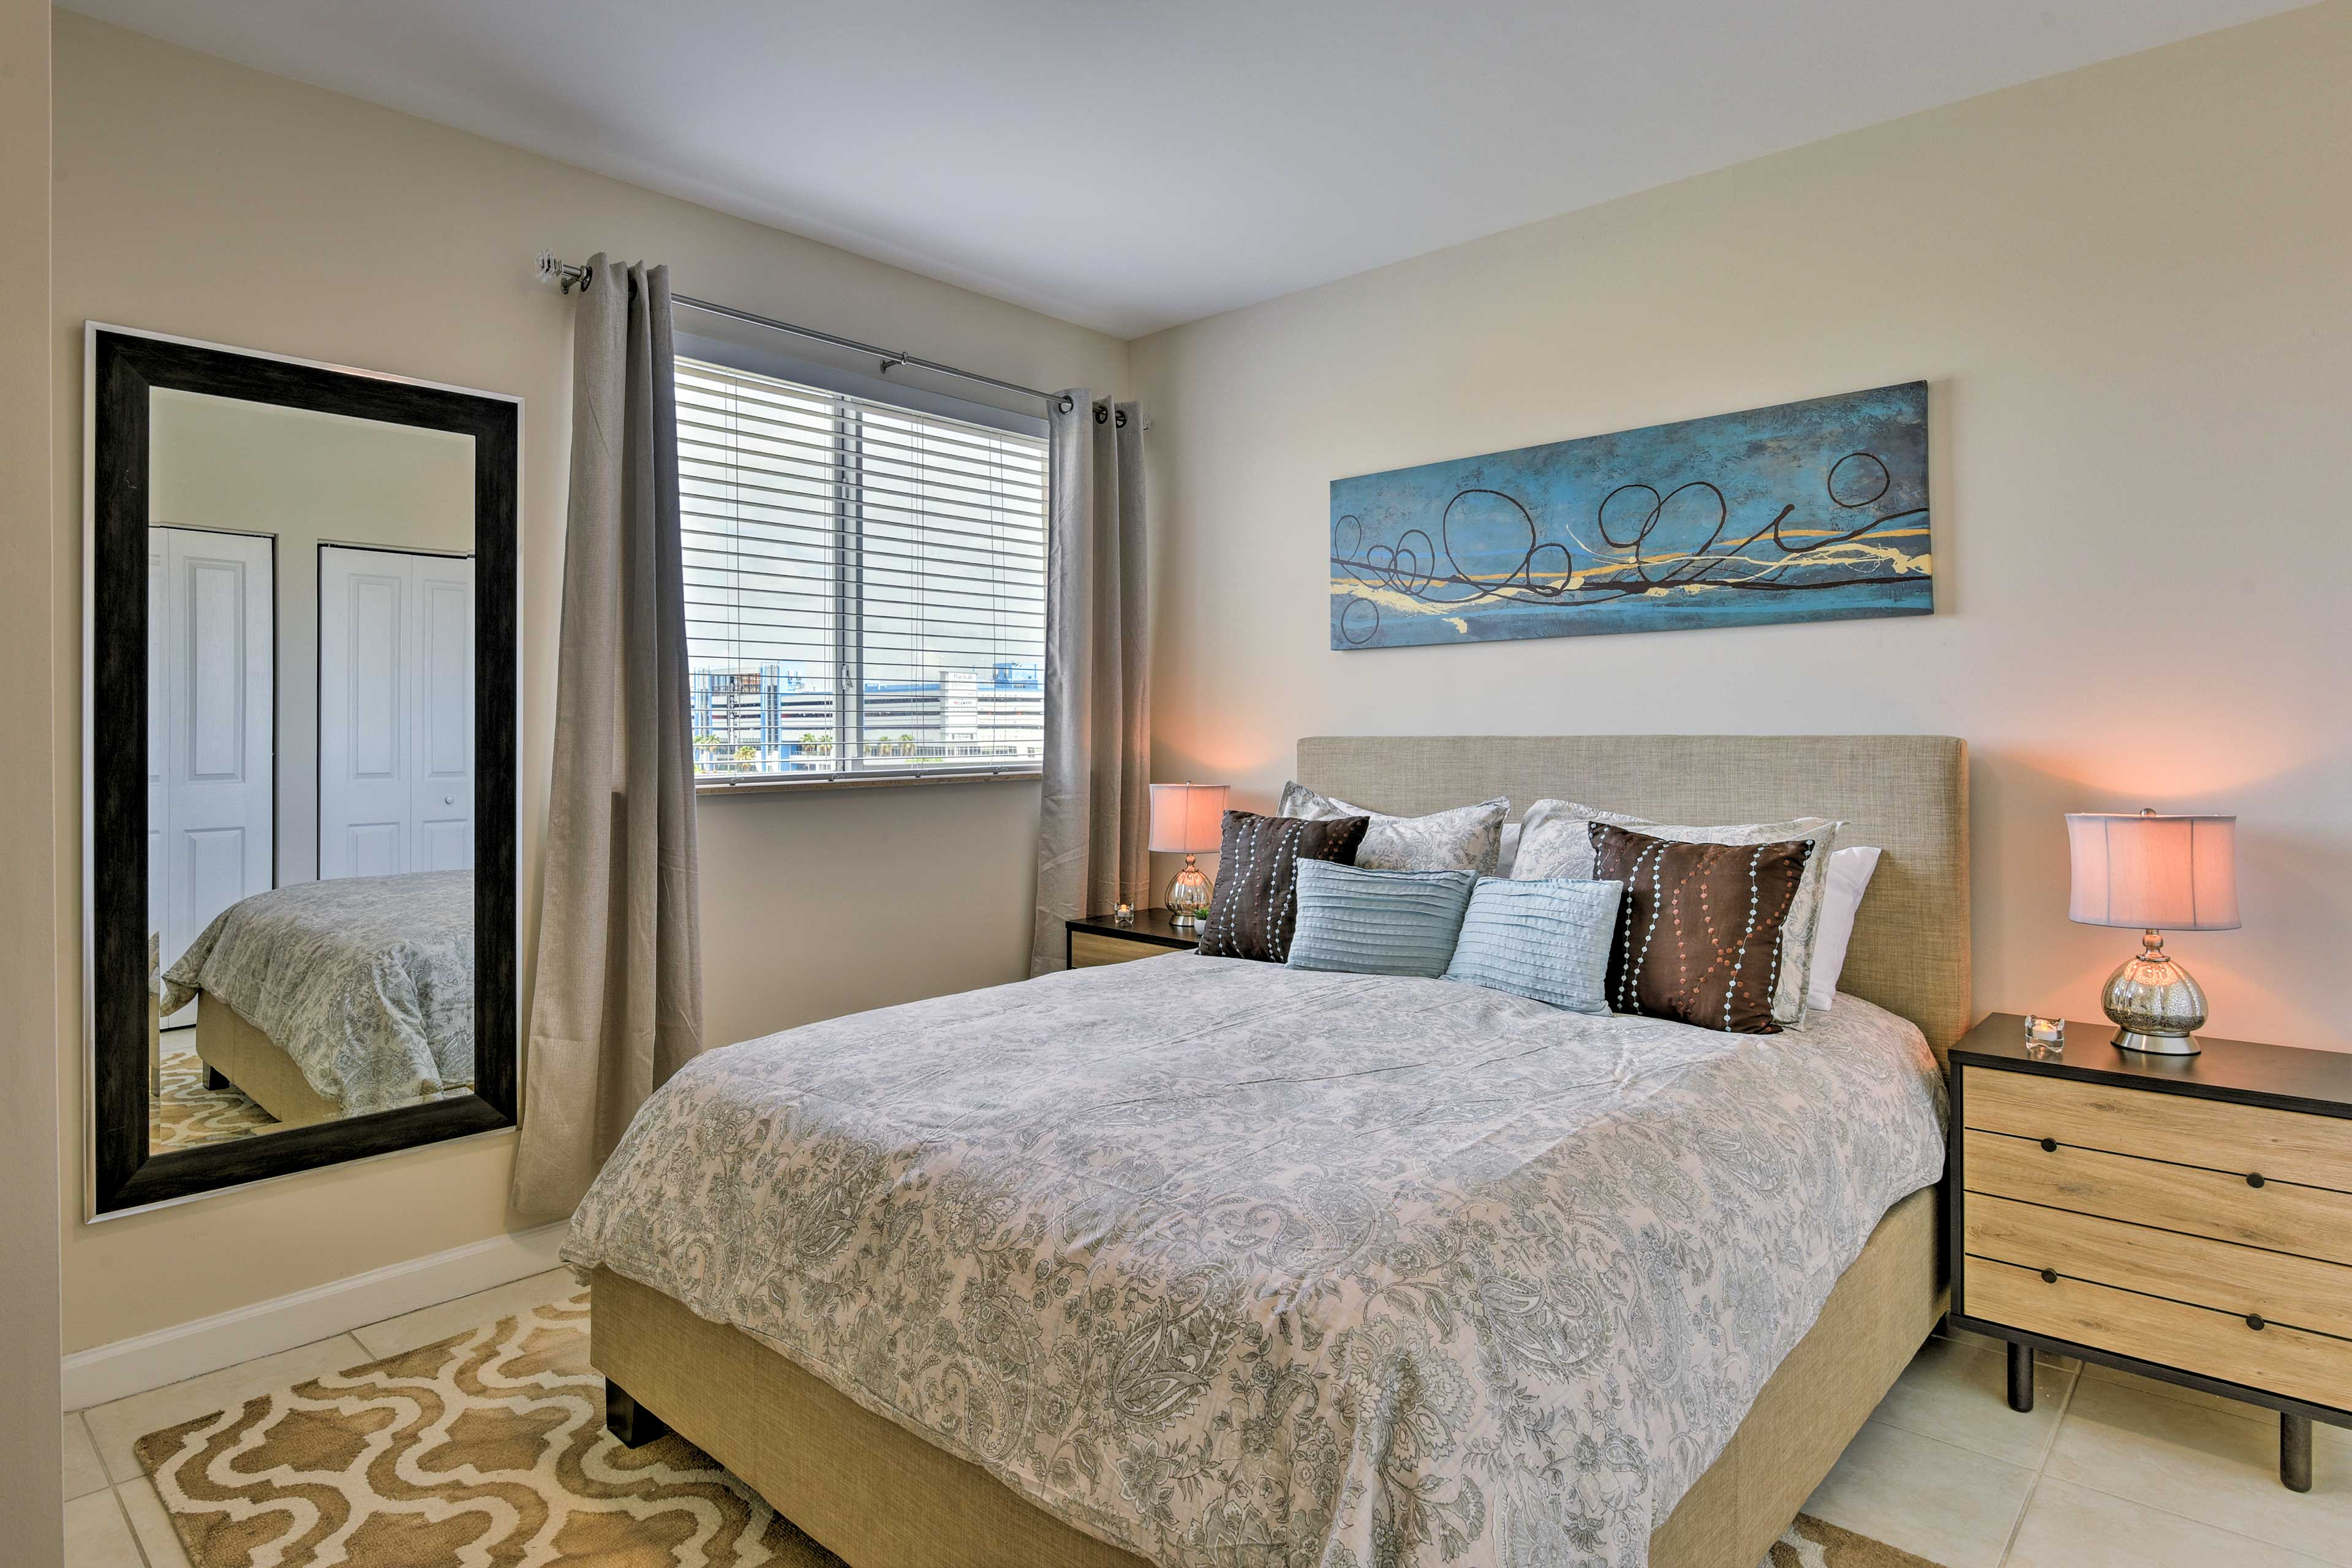 Chic furniture and beautiful artwork highlight the bedroom.